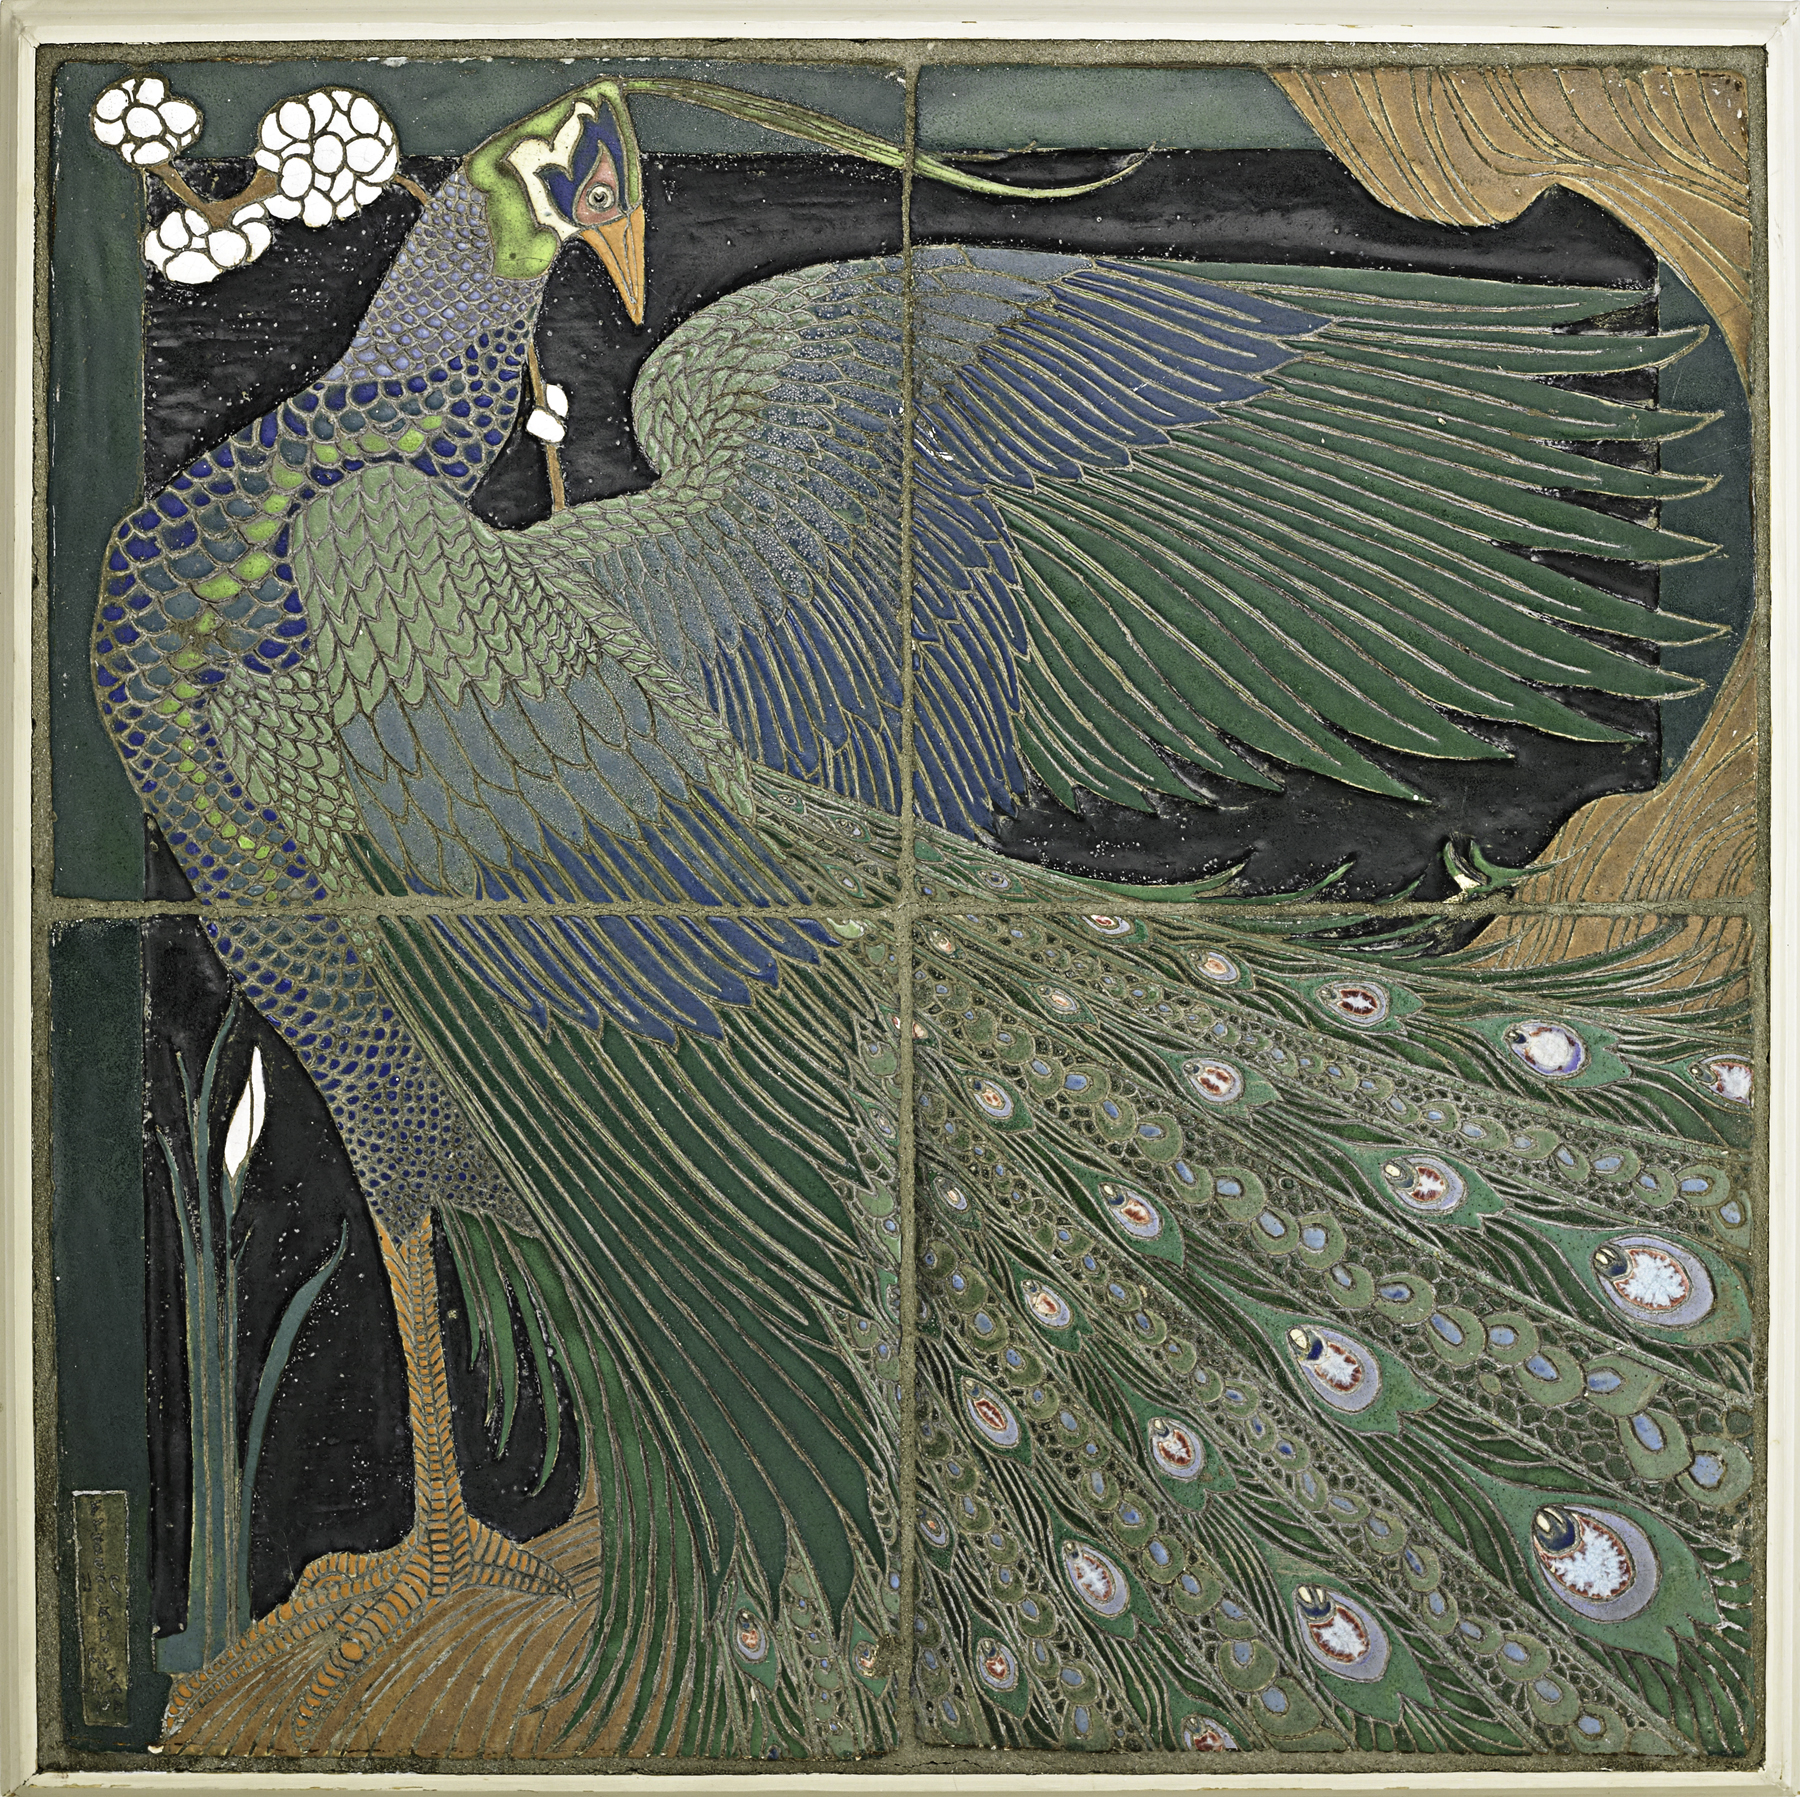 A unique, large four-tile panel depicting a peacock, made by Frederick Hurten Rhead in 1910 for a friend, Levi Burgess. Rago Auctions estimated the panel at $35,000 to $45,000 and sold it in October 2012 for $637,500--a then-record for any American work of ceramics at auction.